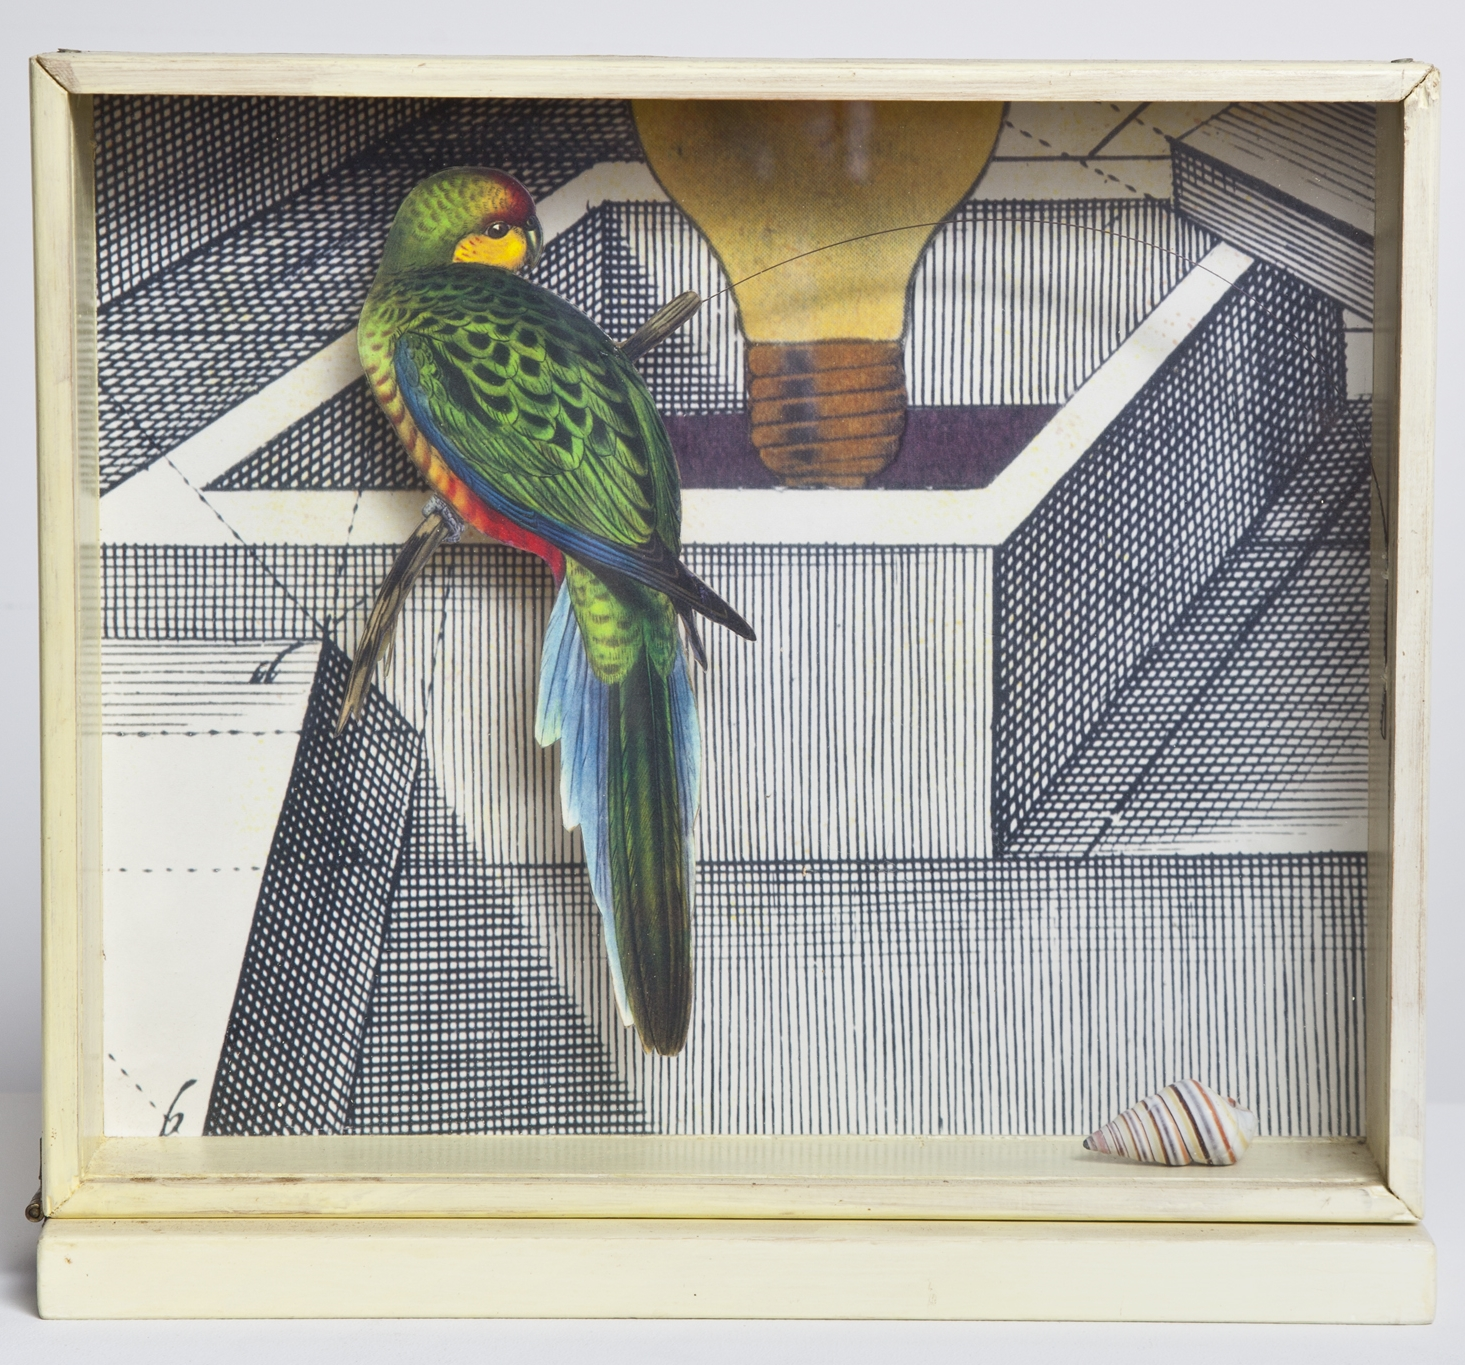 Lawrence Jordan, HYPEROIN BOX 1, 1994, collage, 11 1/2 x 12 1/2 x 3 1/2 inches